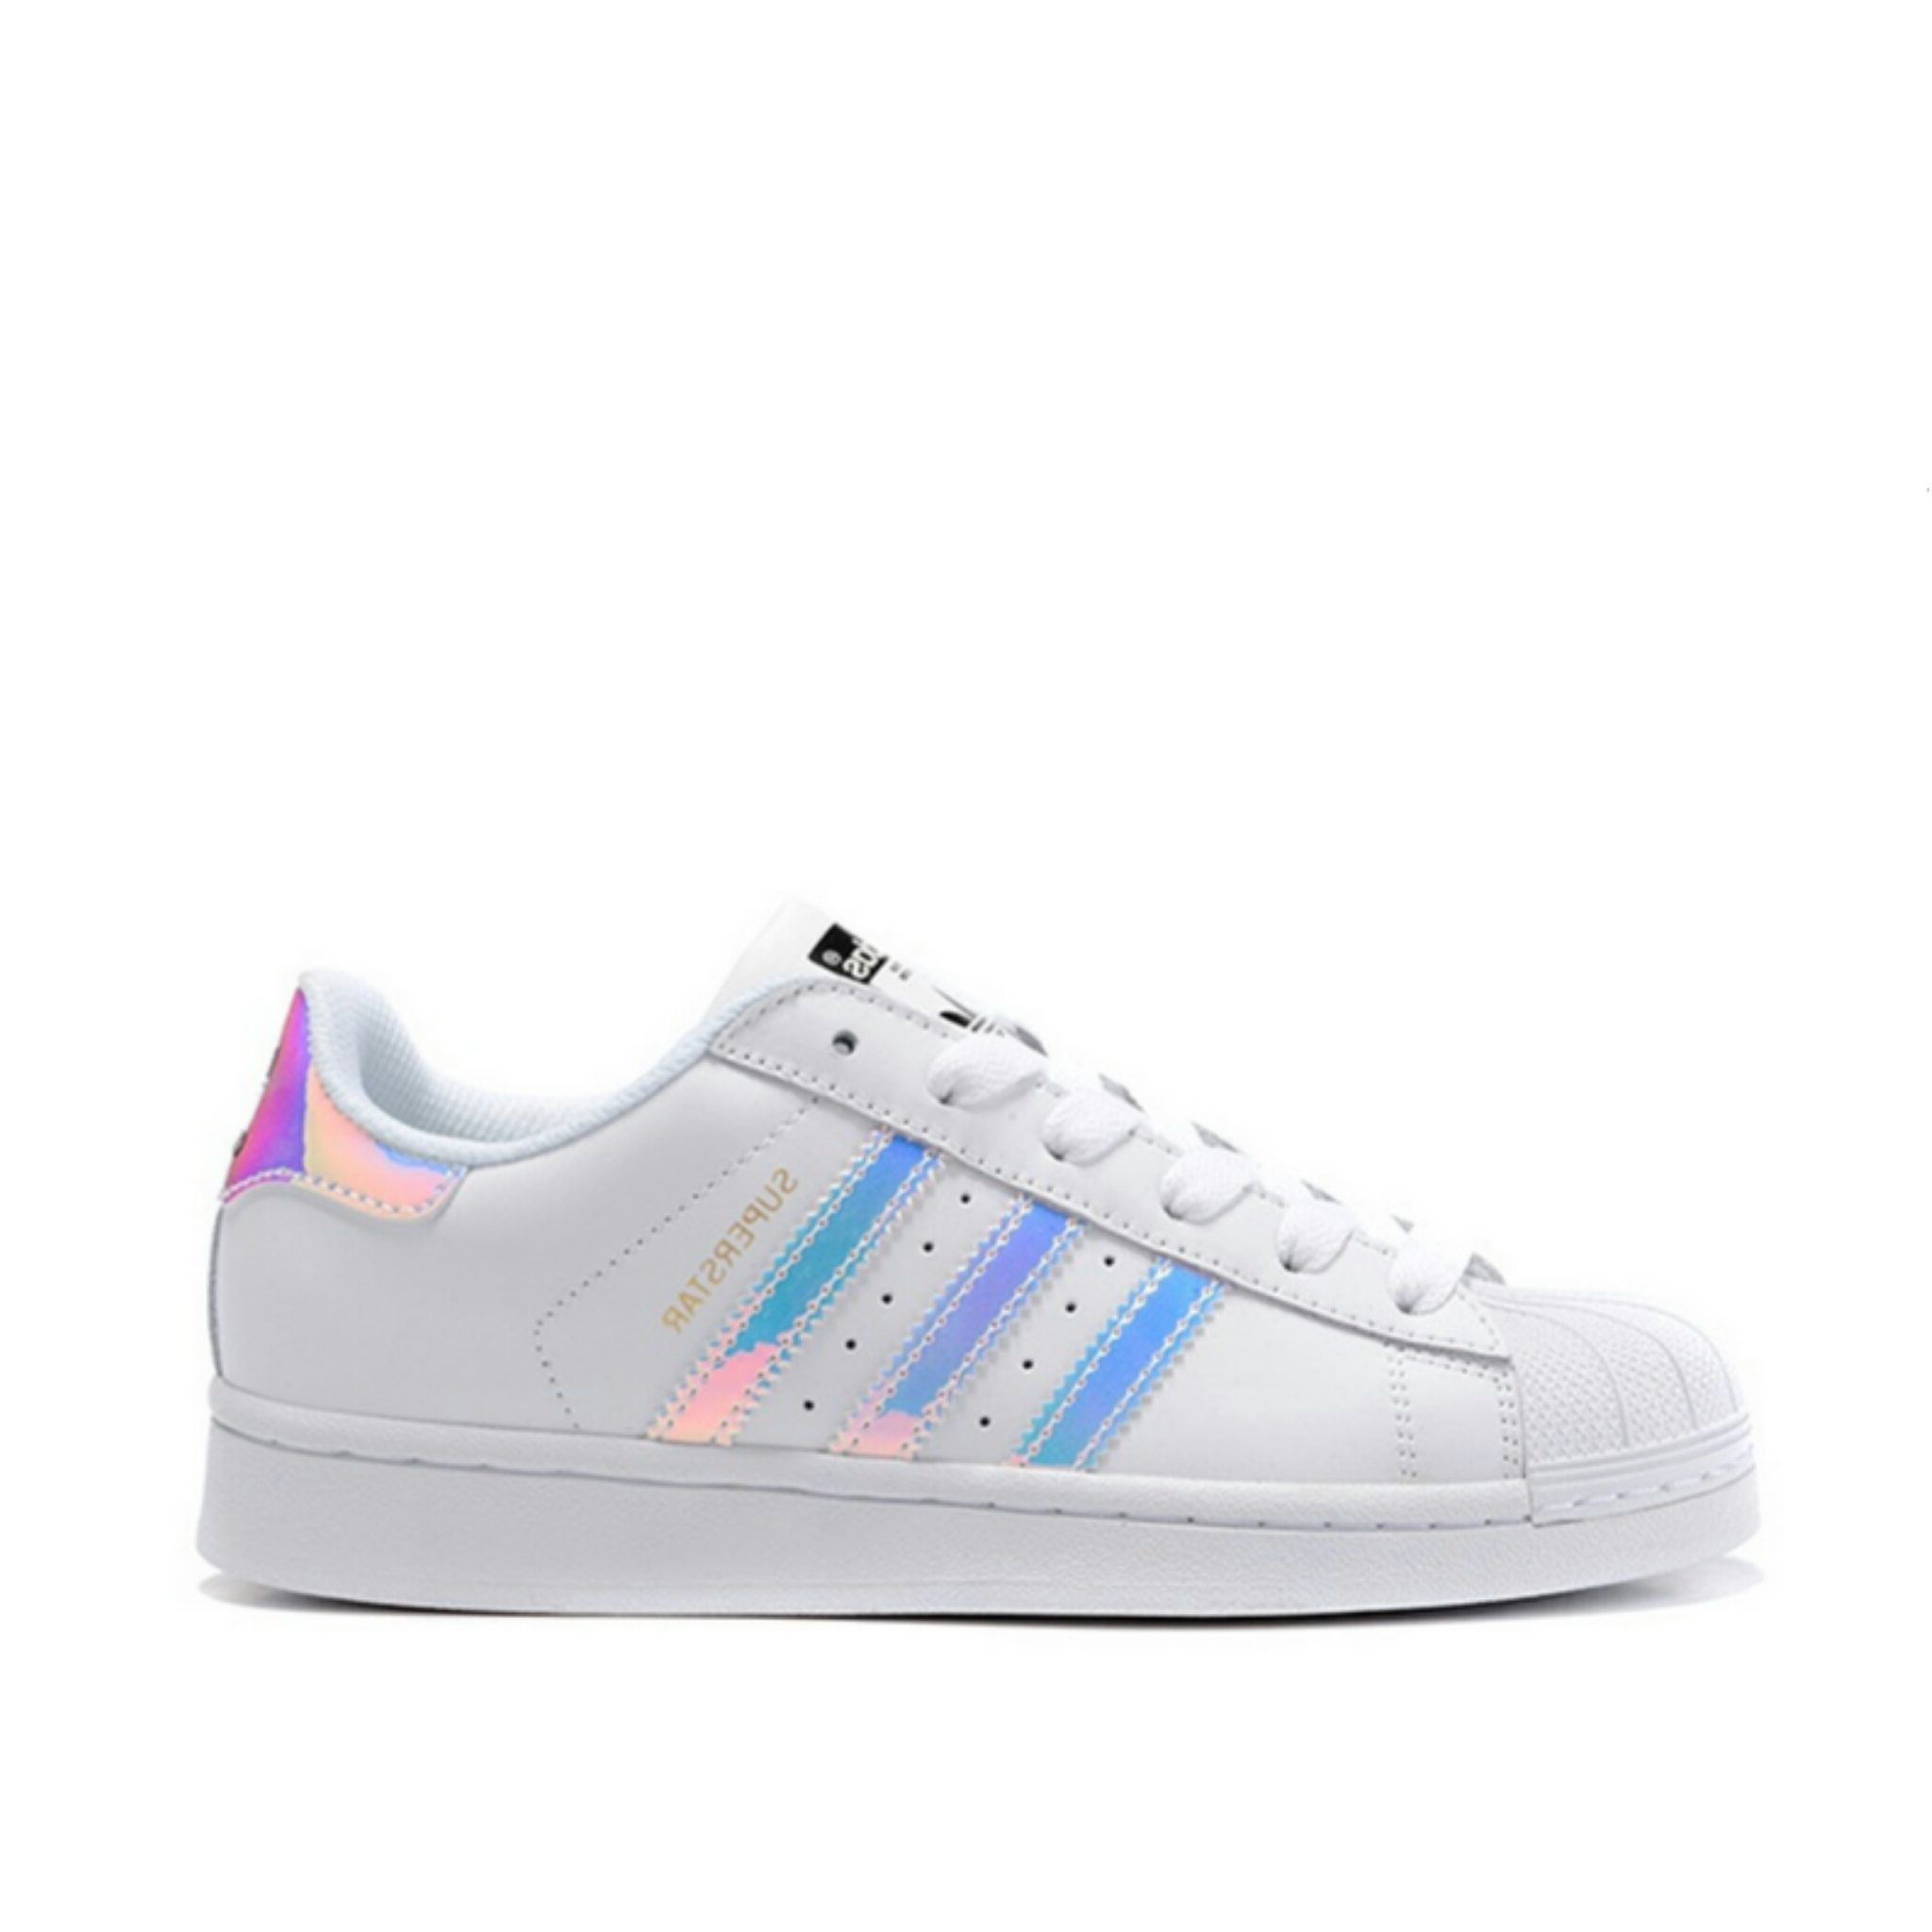 Adidas Superstar Hologram For Women